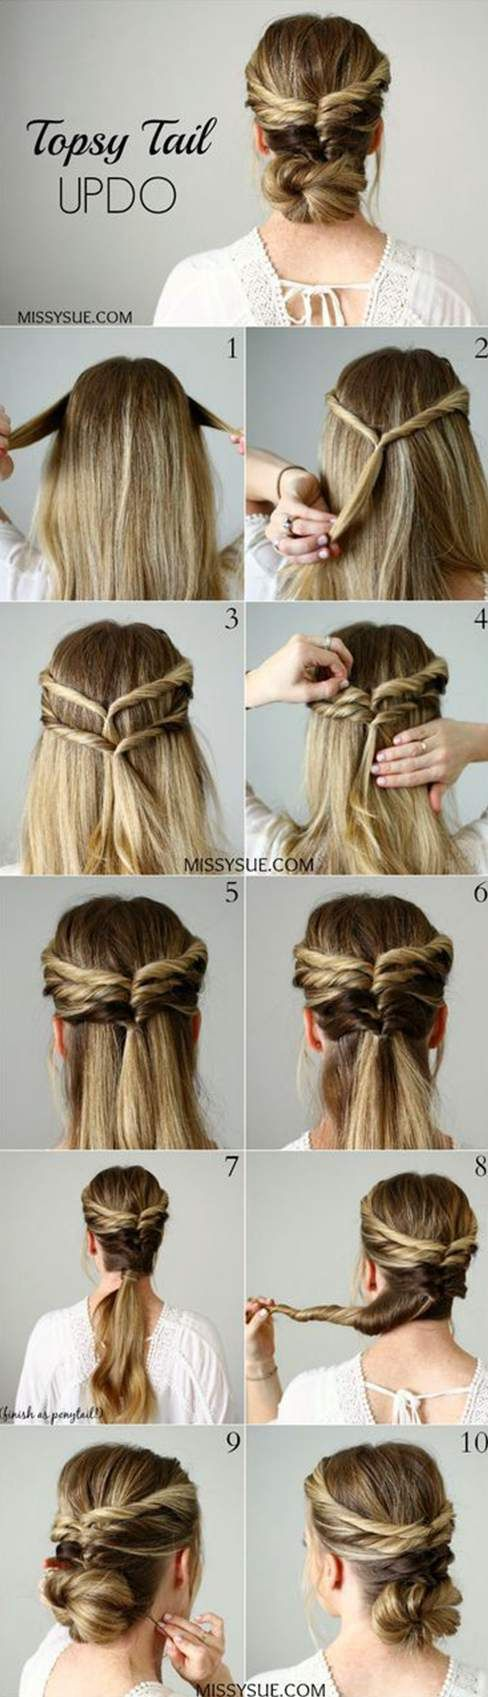 Easy 4 Minute Hairstyles For Long Hair #hairstyles